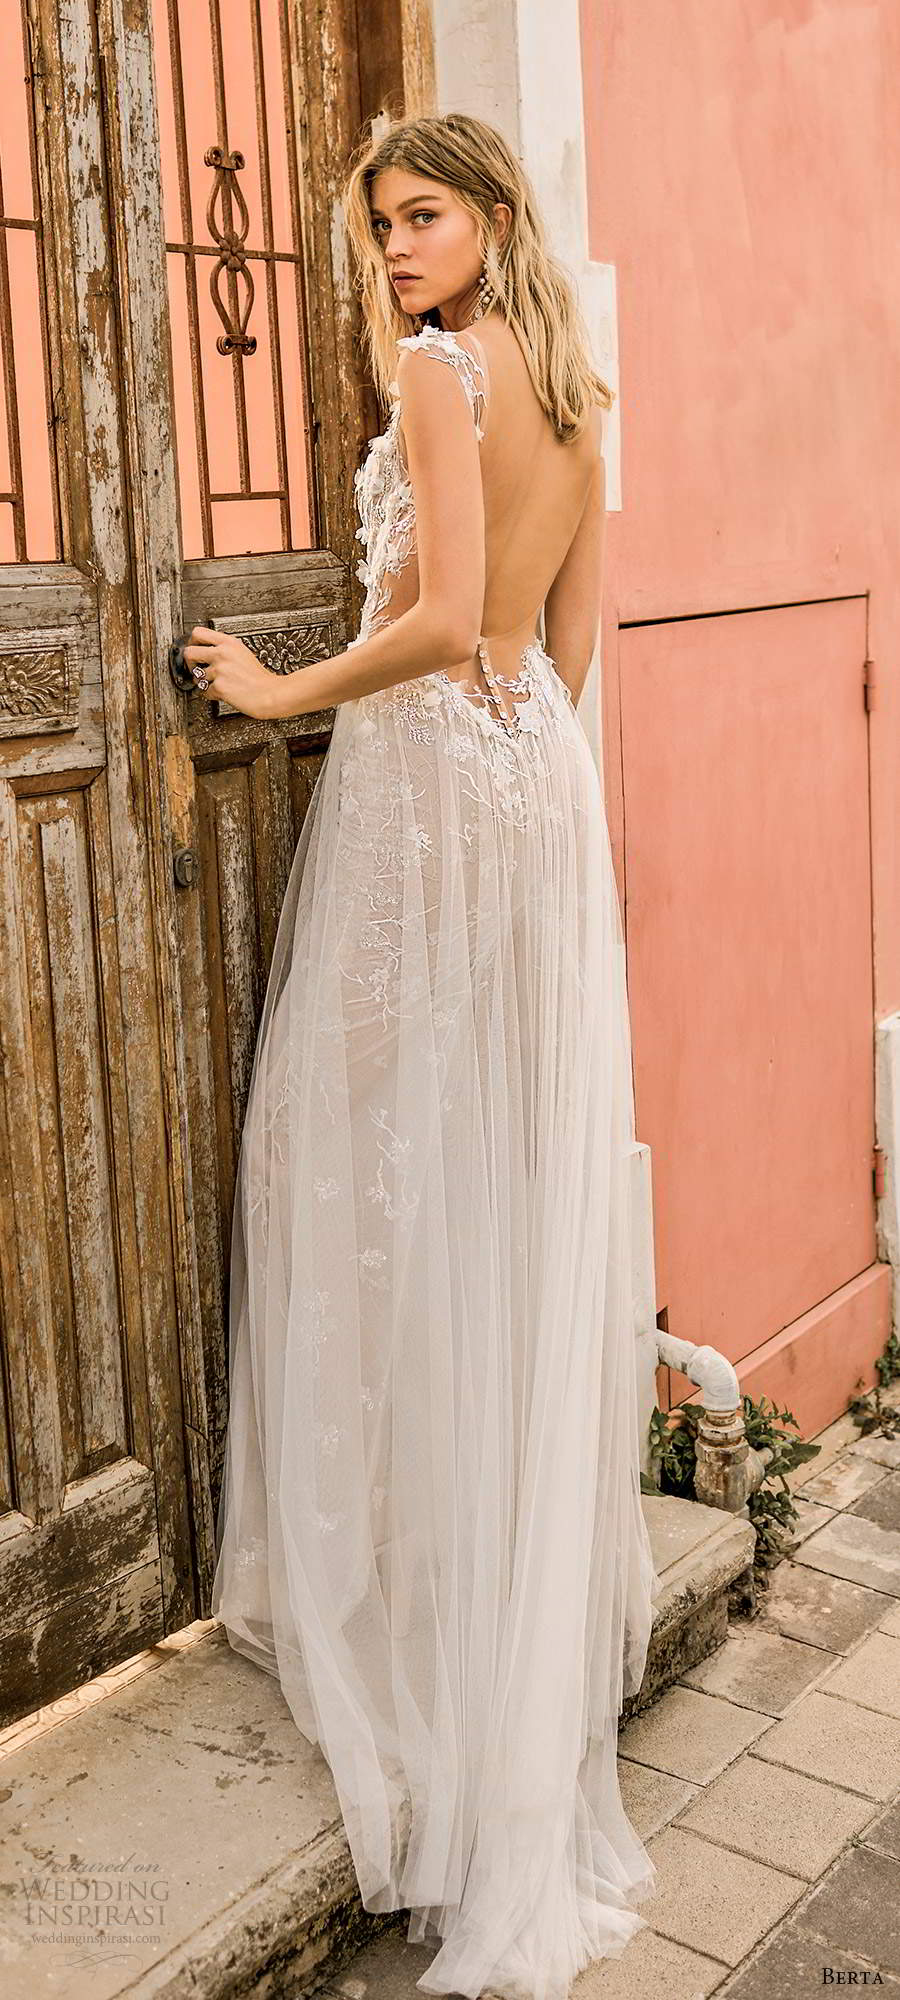 berta 2020 muse bridal illusion cap sleeves sweetheart neckline fully embellished a line wedding dress  open back sweep train (2) bv